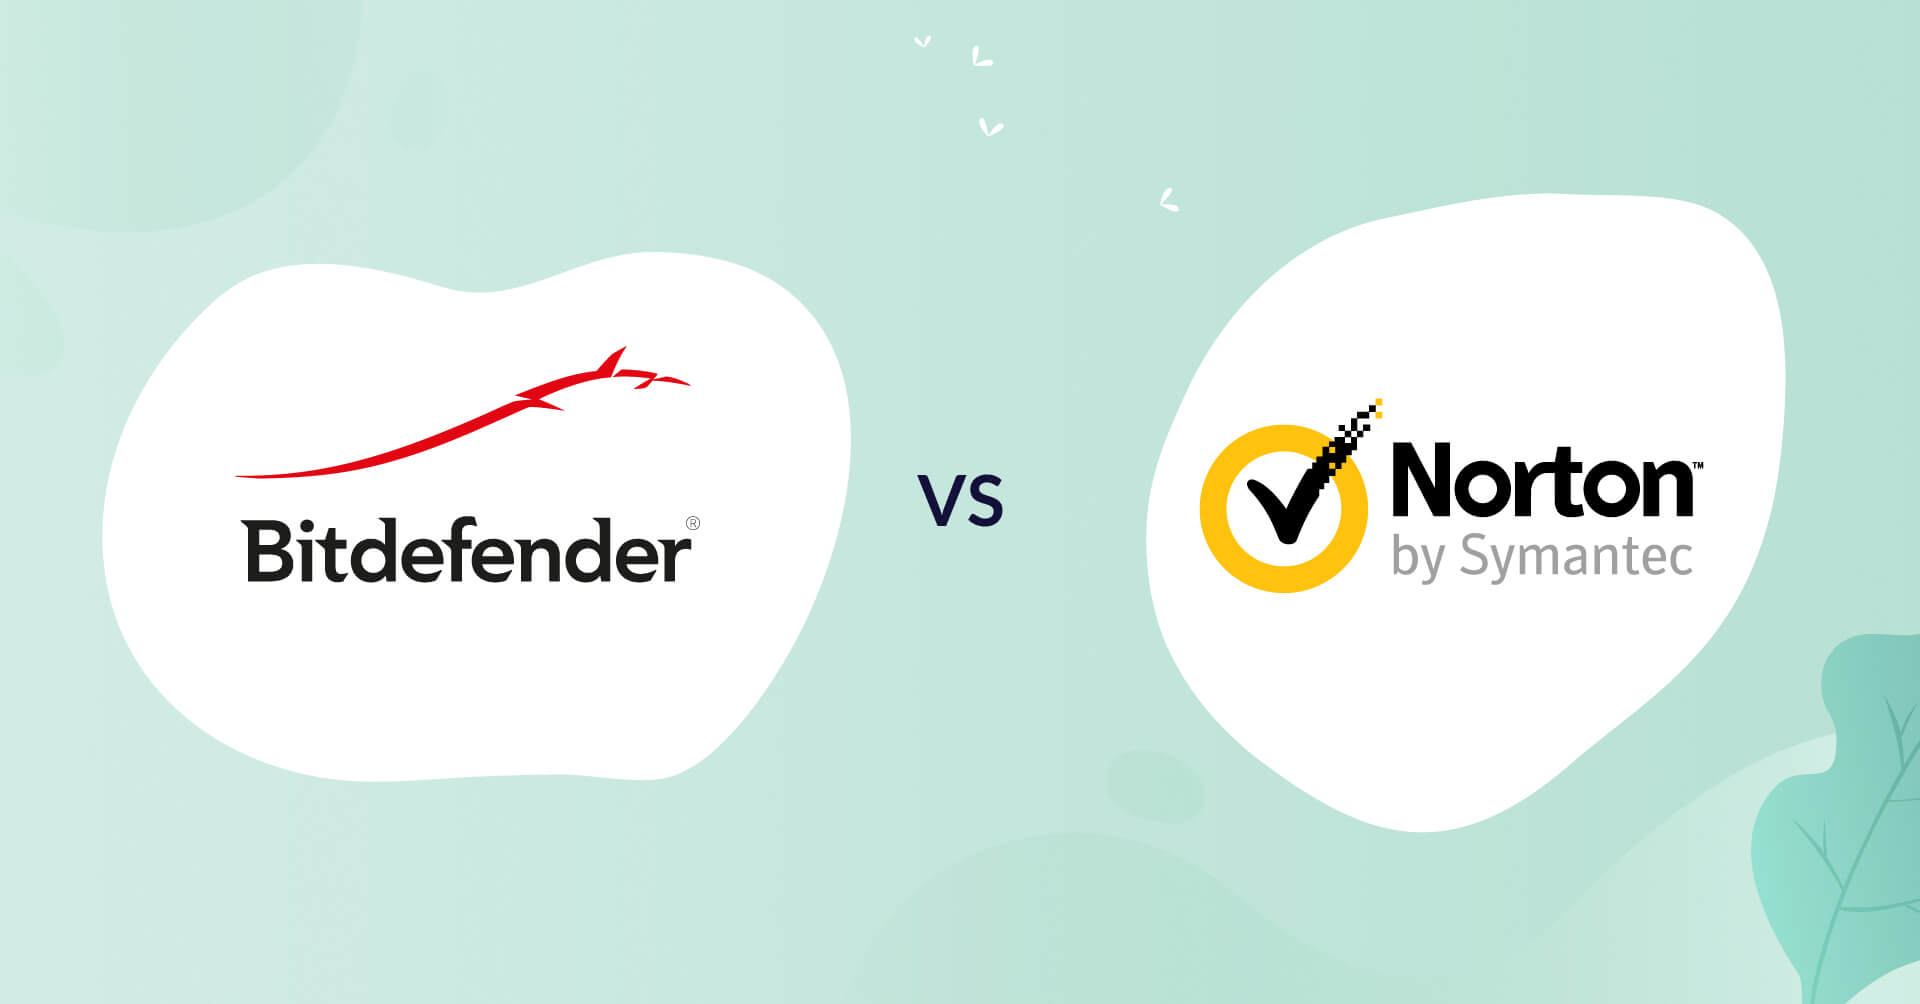 bitdefender logo vs norton logo antivirus comparison header for how to choose article